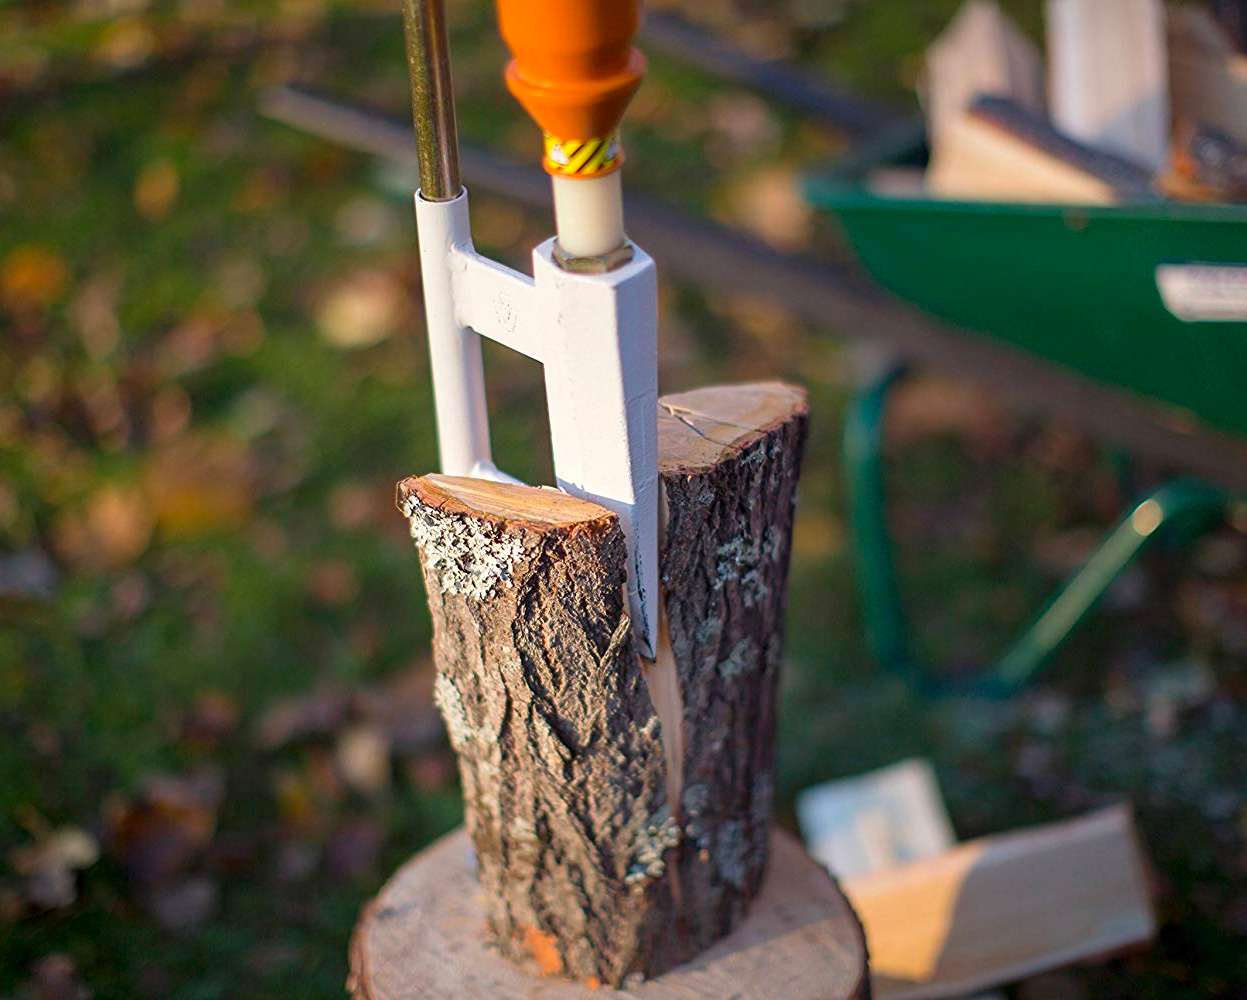 The Smart-Splitter Chops Wood Without Breaking Your Back at werd.com